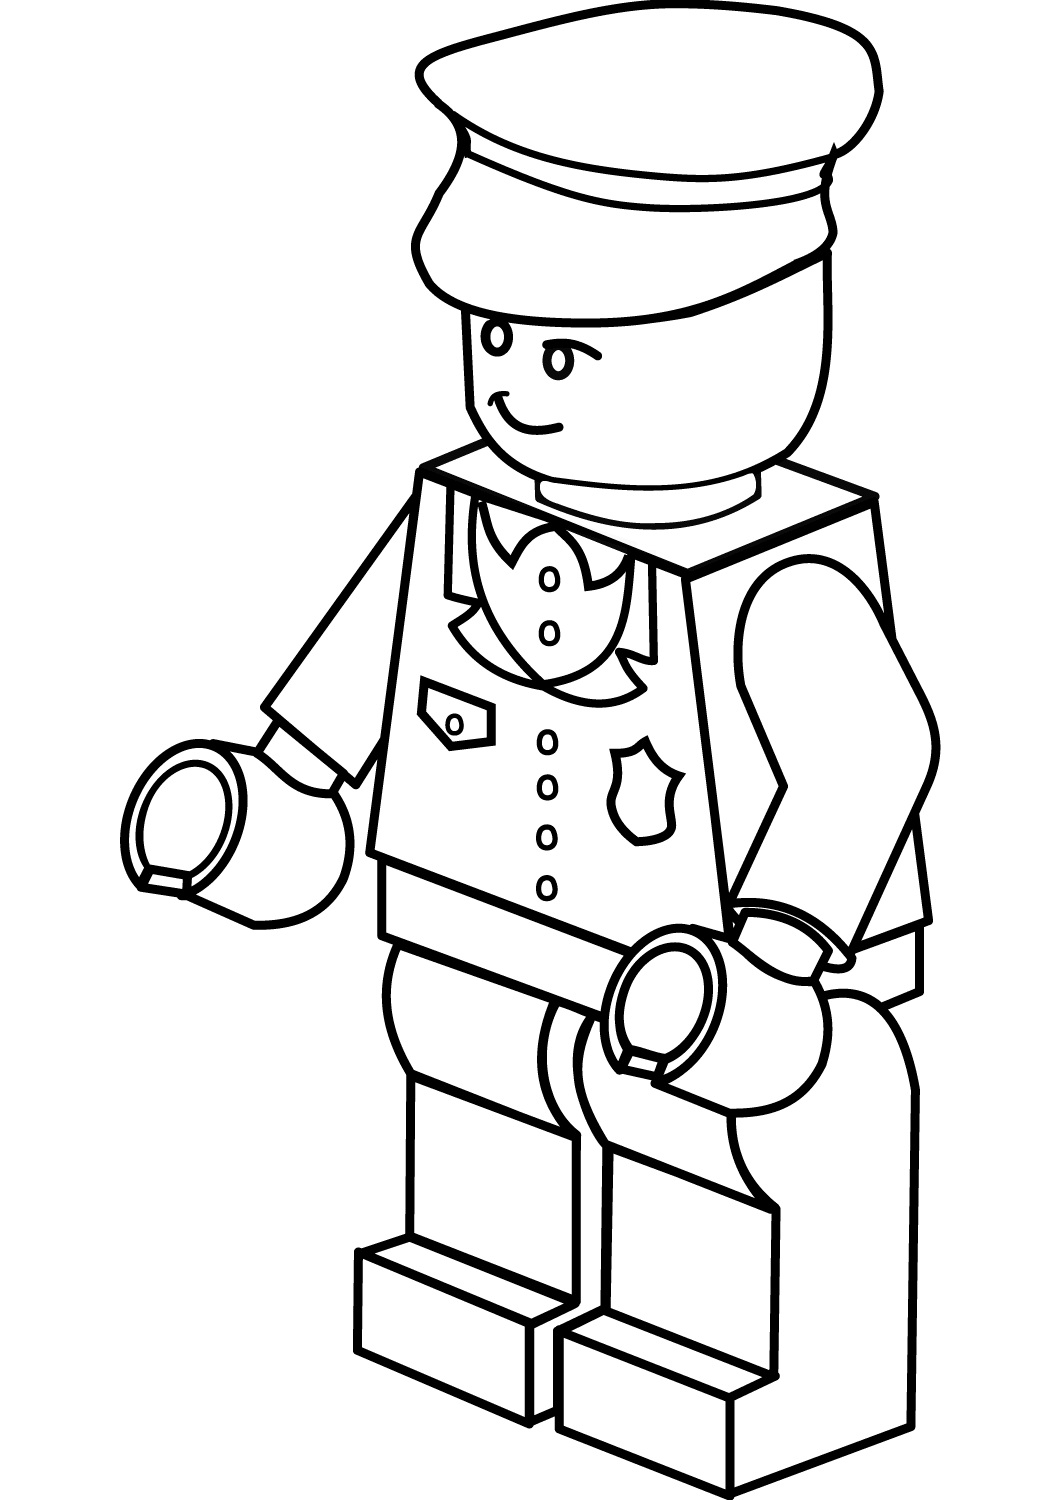 Coloring Pages For Kids And Adults: Free Printable Lego Coloring ...